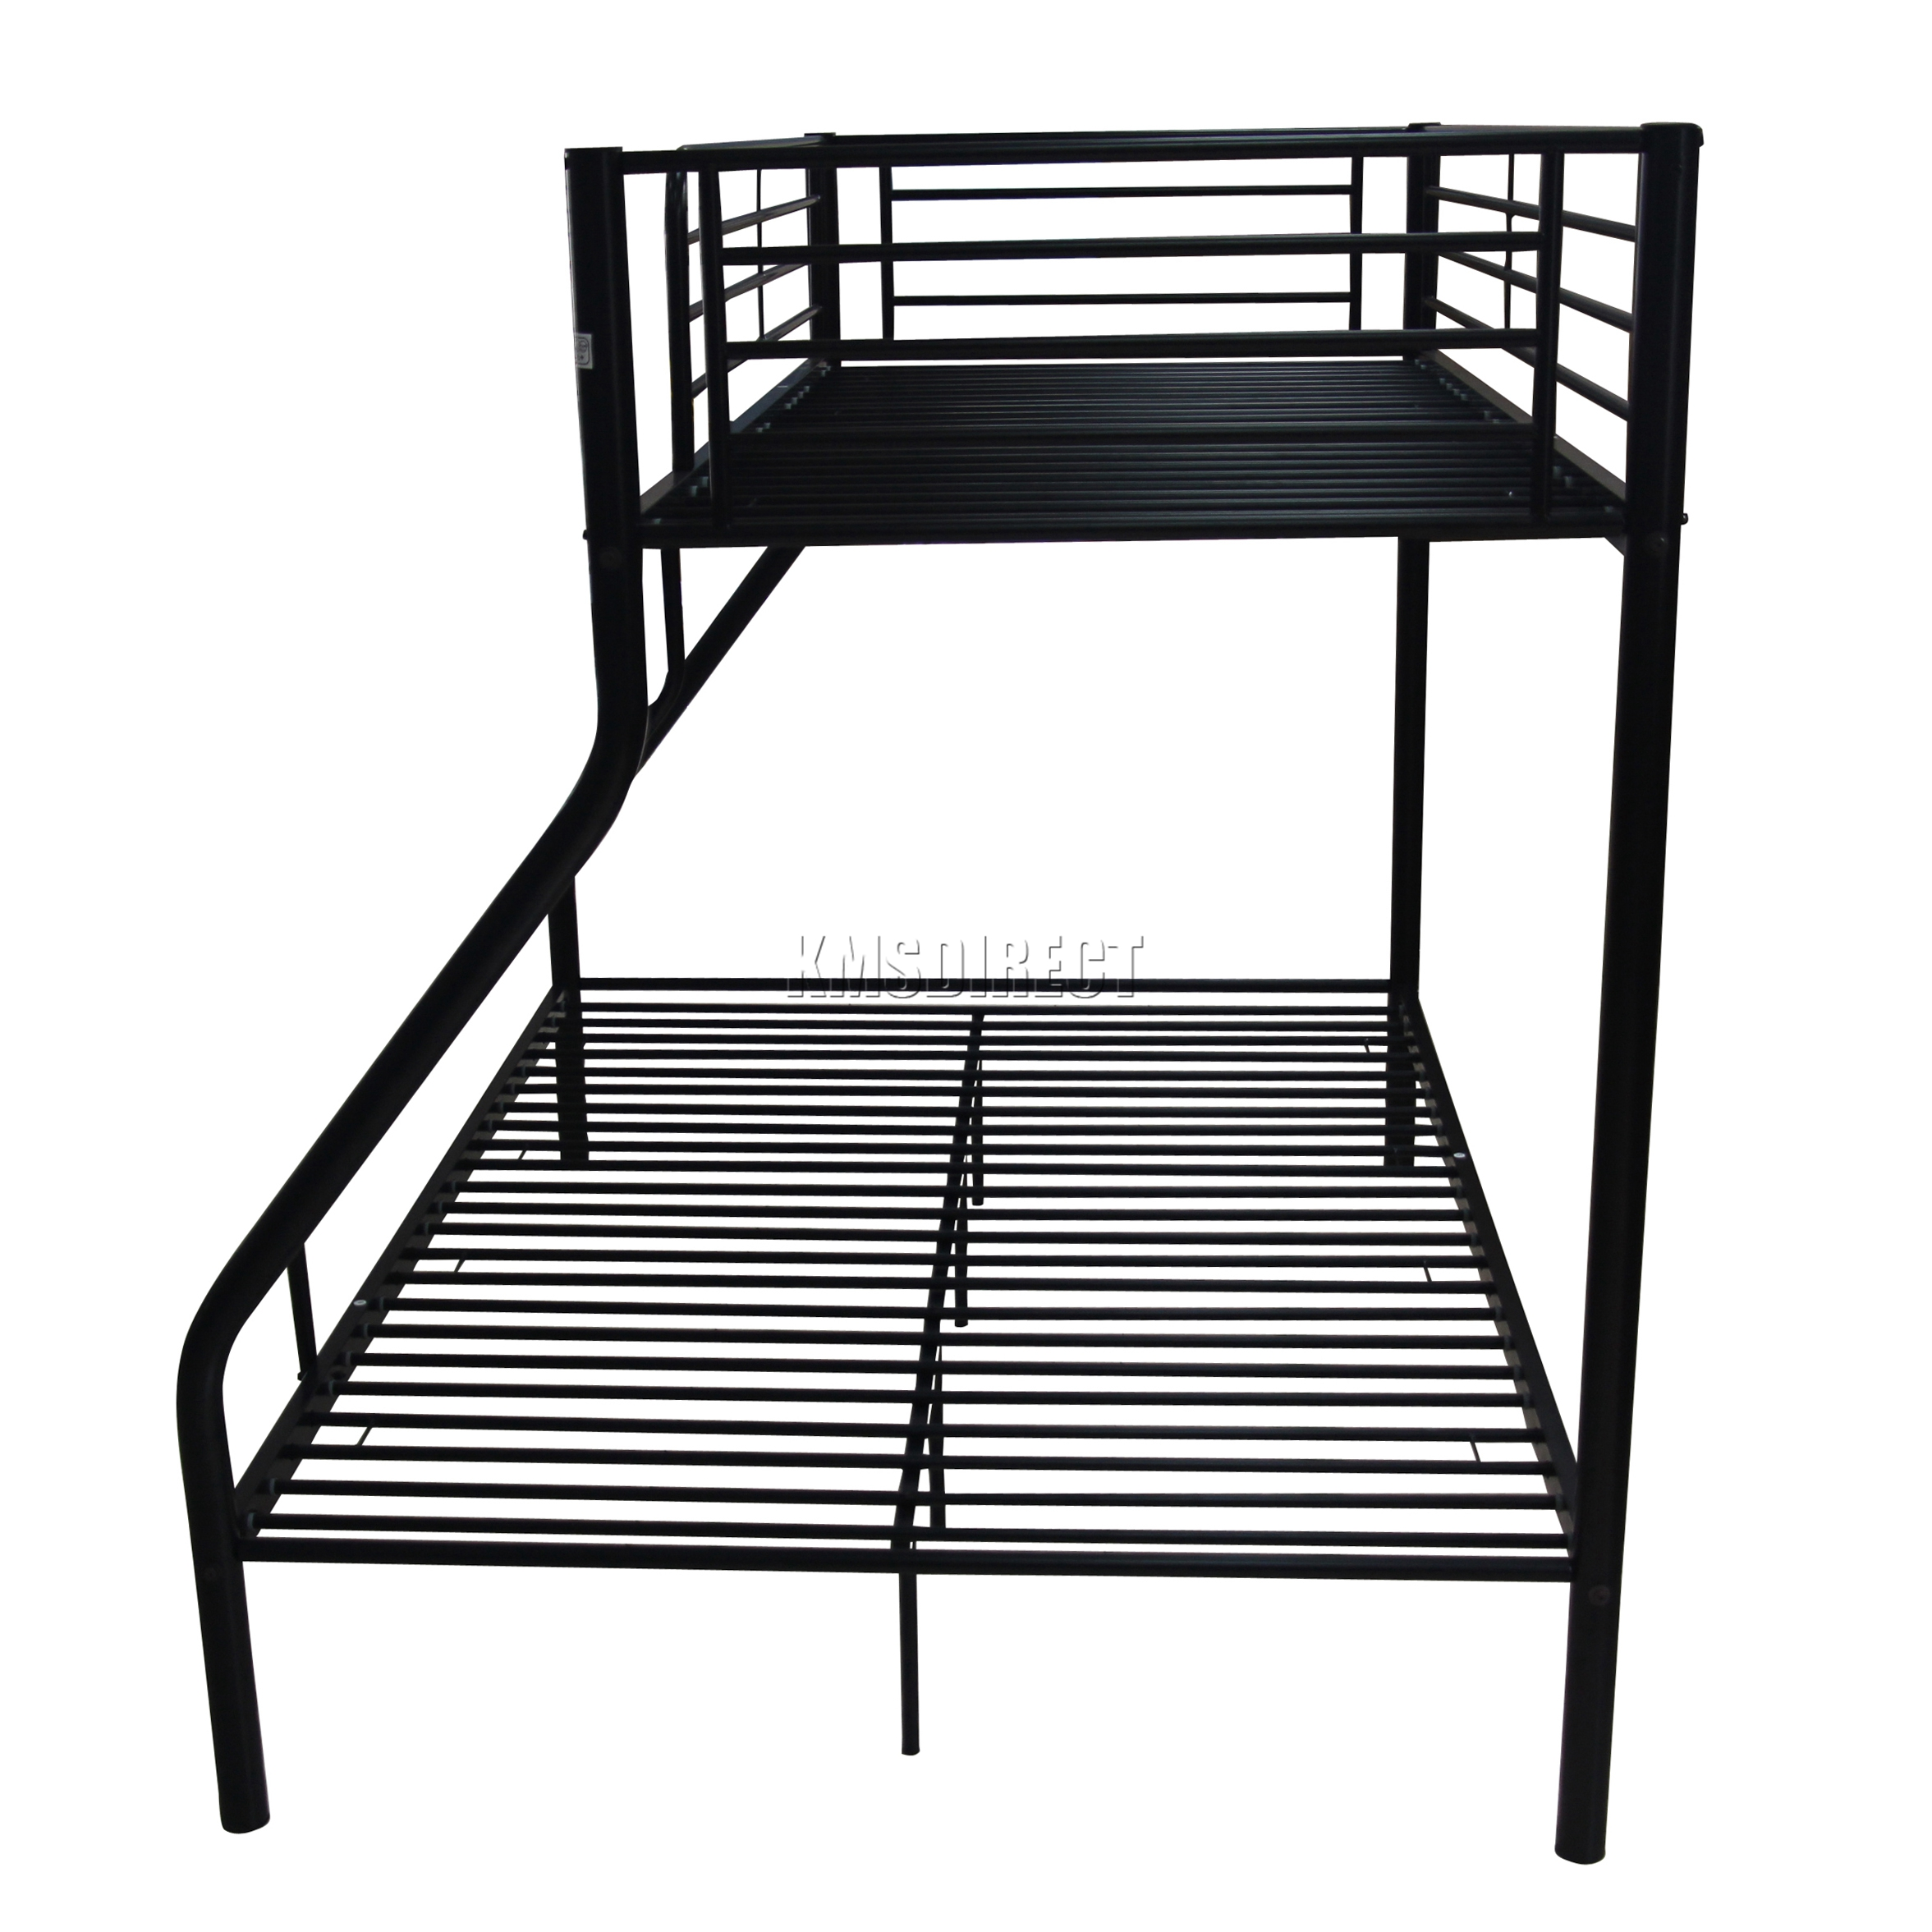 foxhunter new black metal triple children sleeper bunk bed frame no mattress ebay. Black Bedroom Furniture Sets. Home Design Ideas